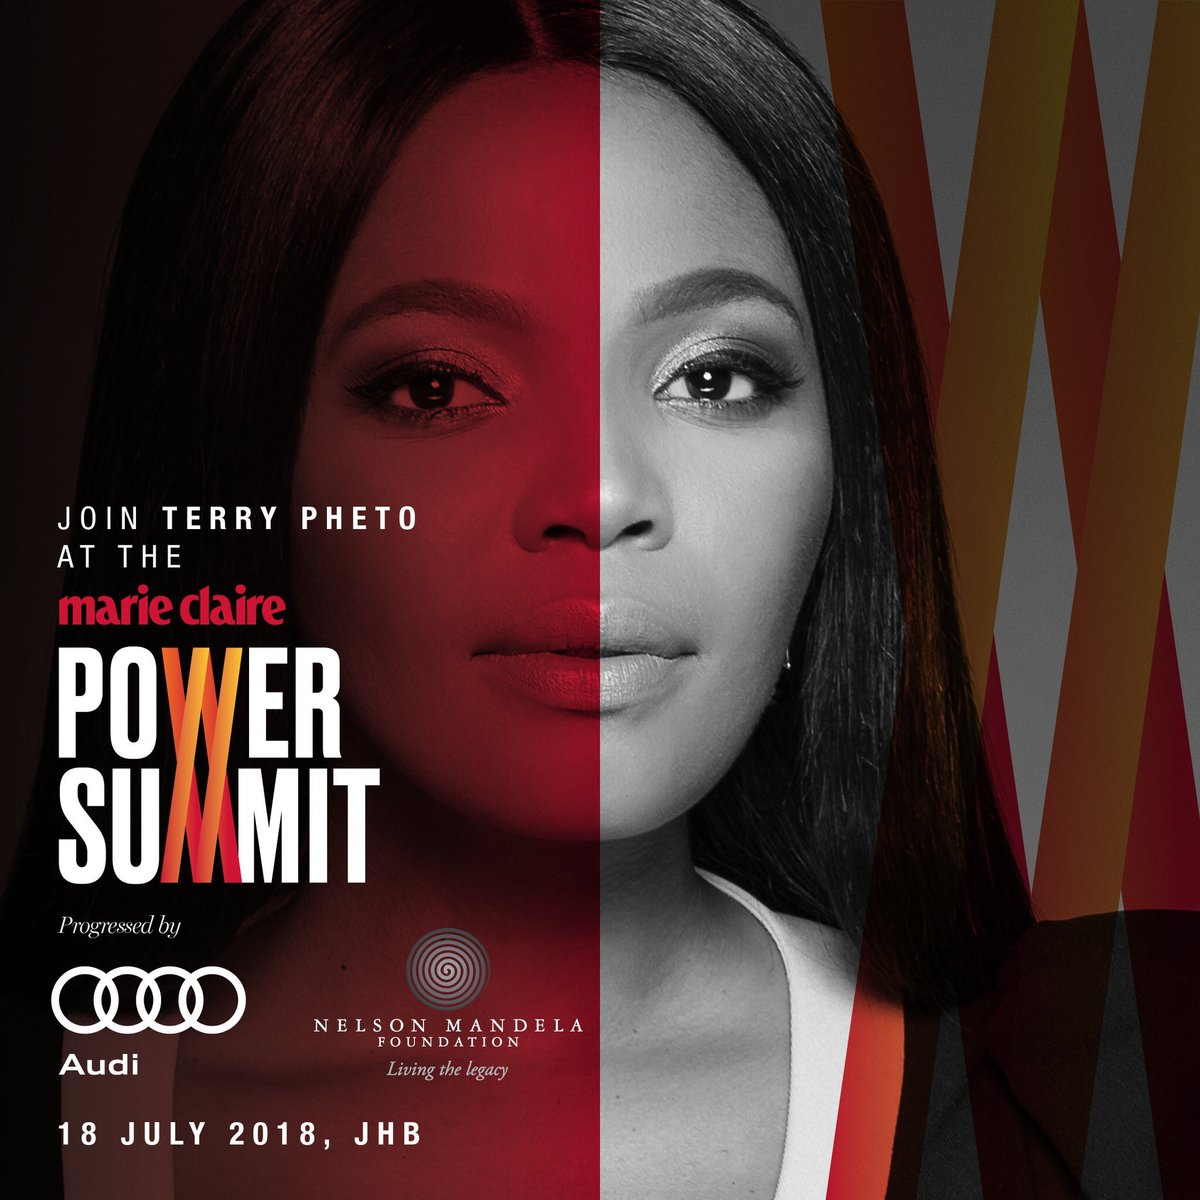 Im honored to be speaking at the #MCPowerSummit2018 alongside incredible women I admire. Join us for a day dedicated to learning from inspirational pioneers and cultural icons. For more info, visit bit.ly/2HktHp5 @nelsonmandela @audisouthafrica